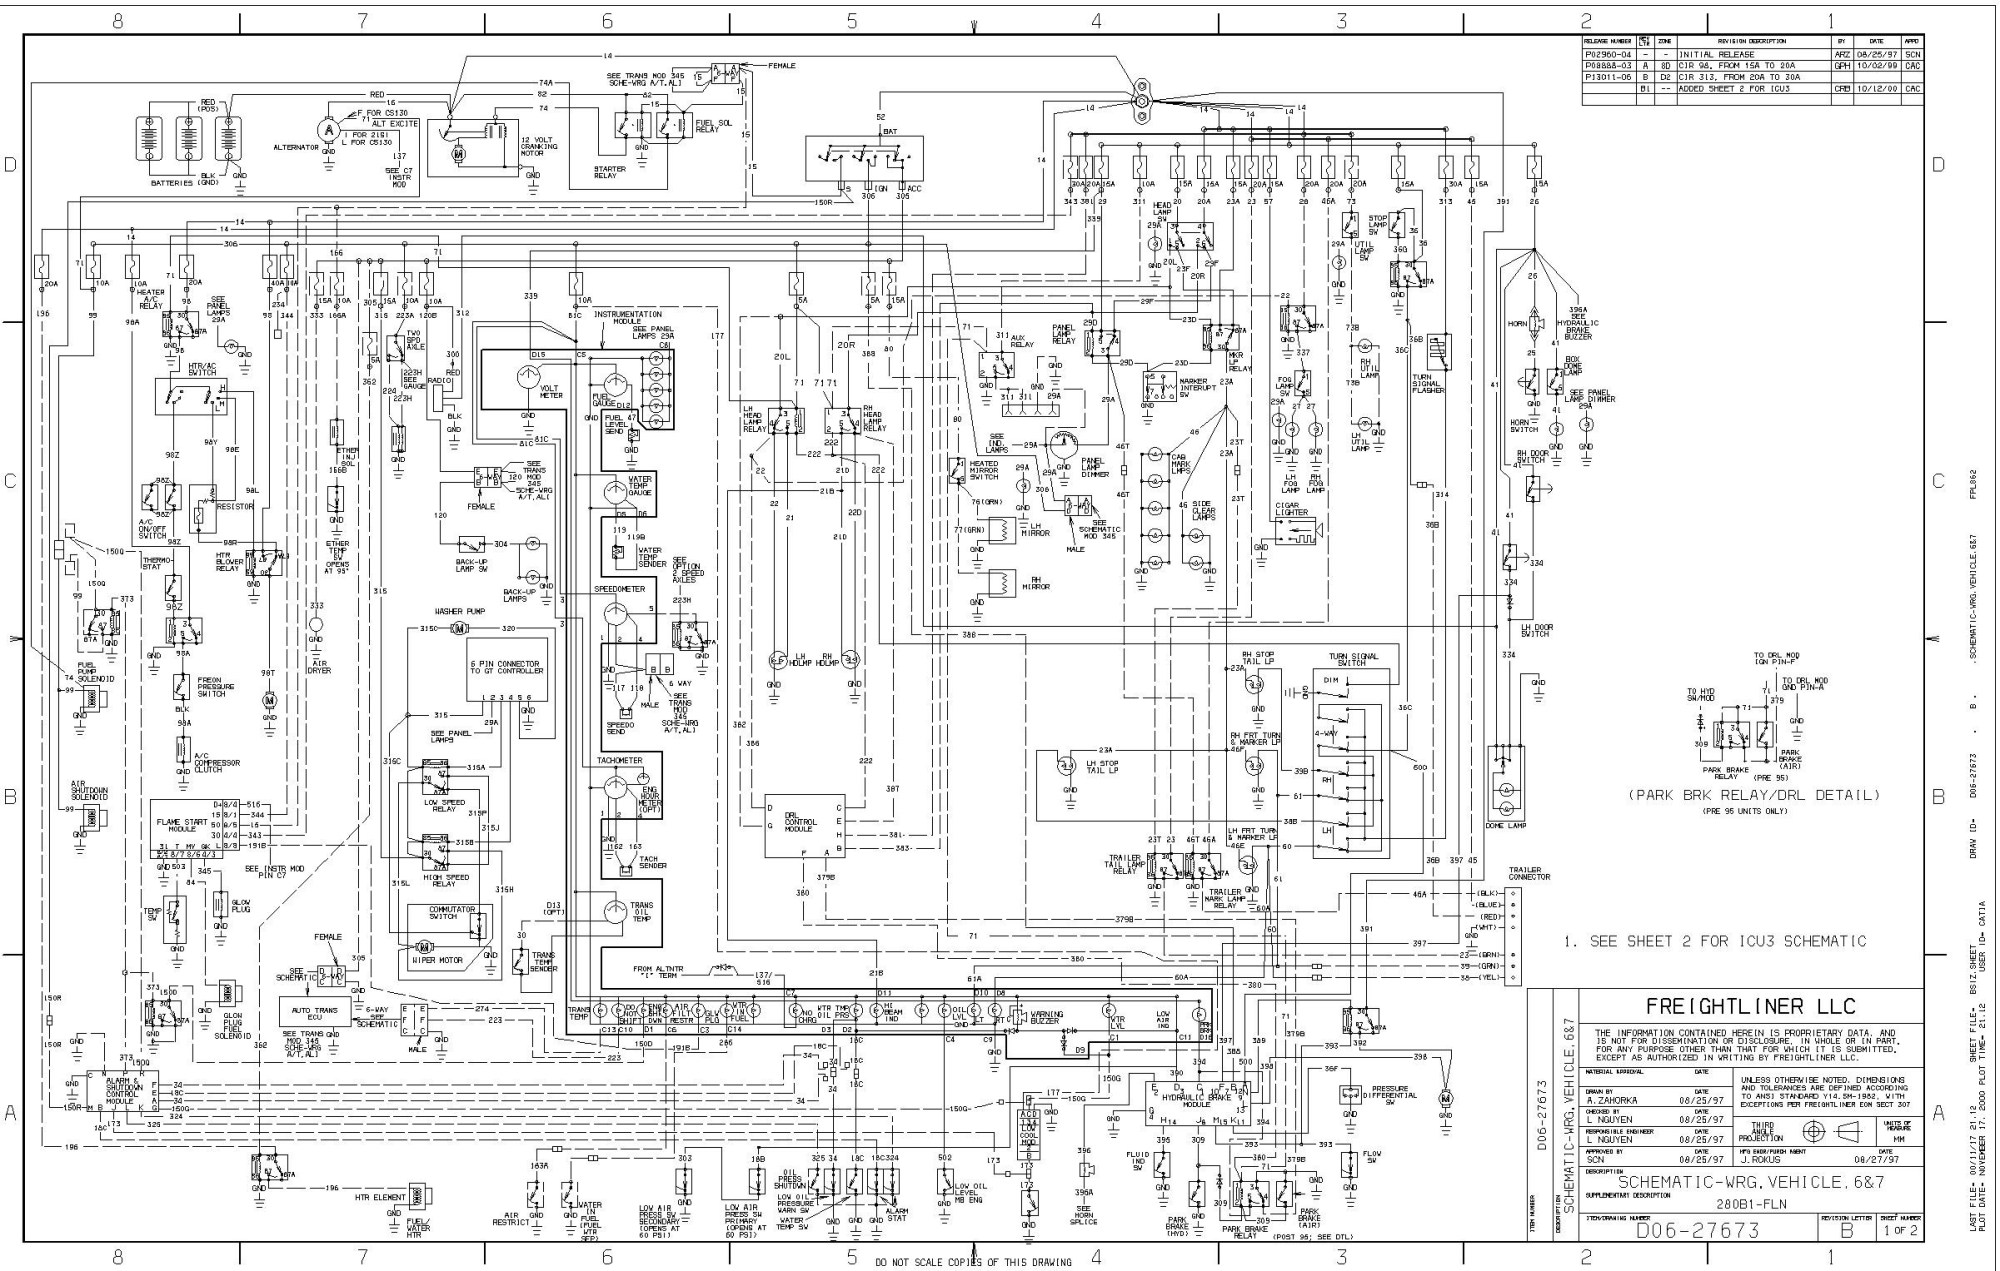 hight resolution of 2001 mercury sable engine diagram fuse box diagram also free image about wiring diagram and schematic